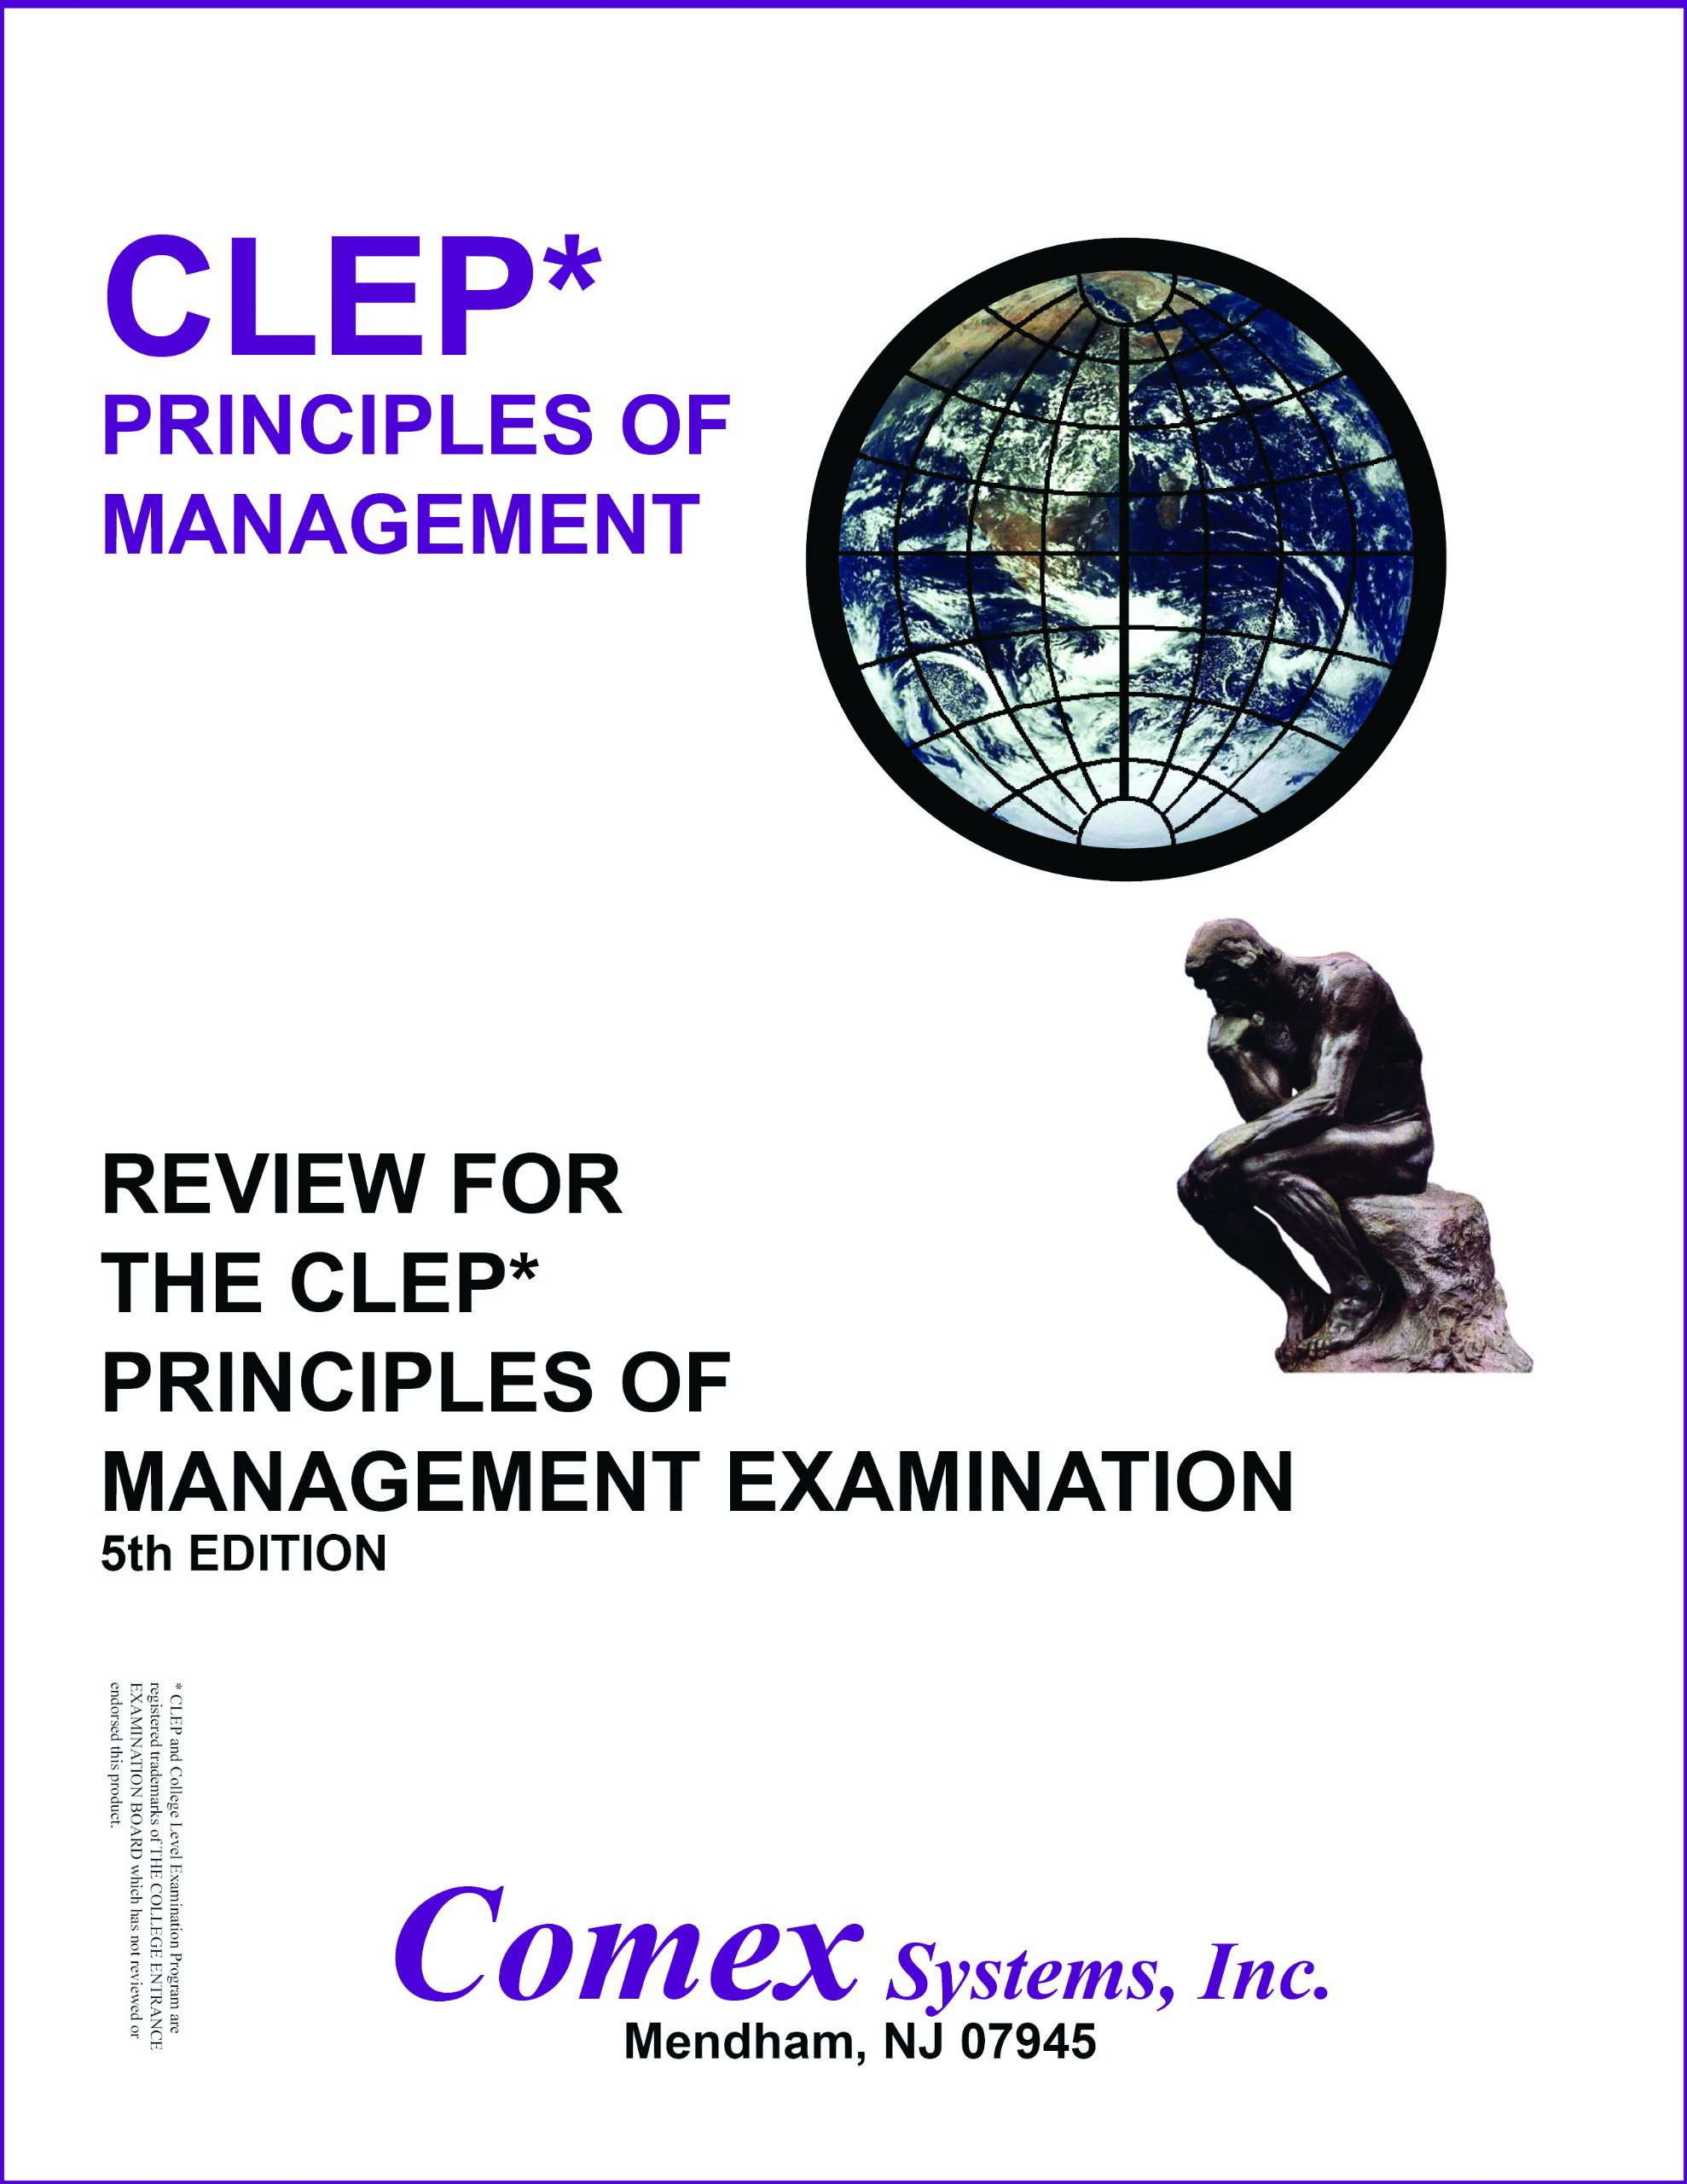 Review For The CLEP Principles of Management Examination